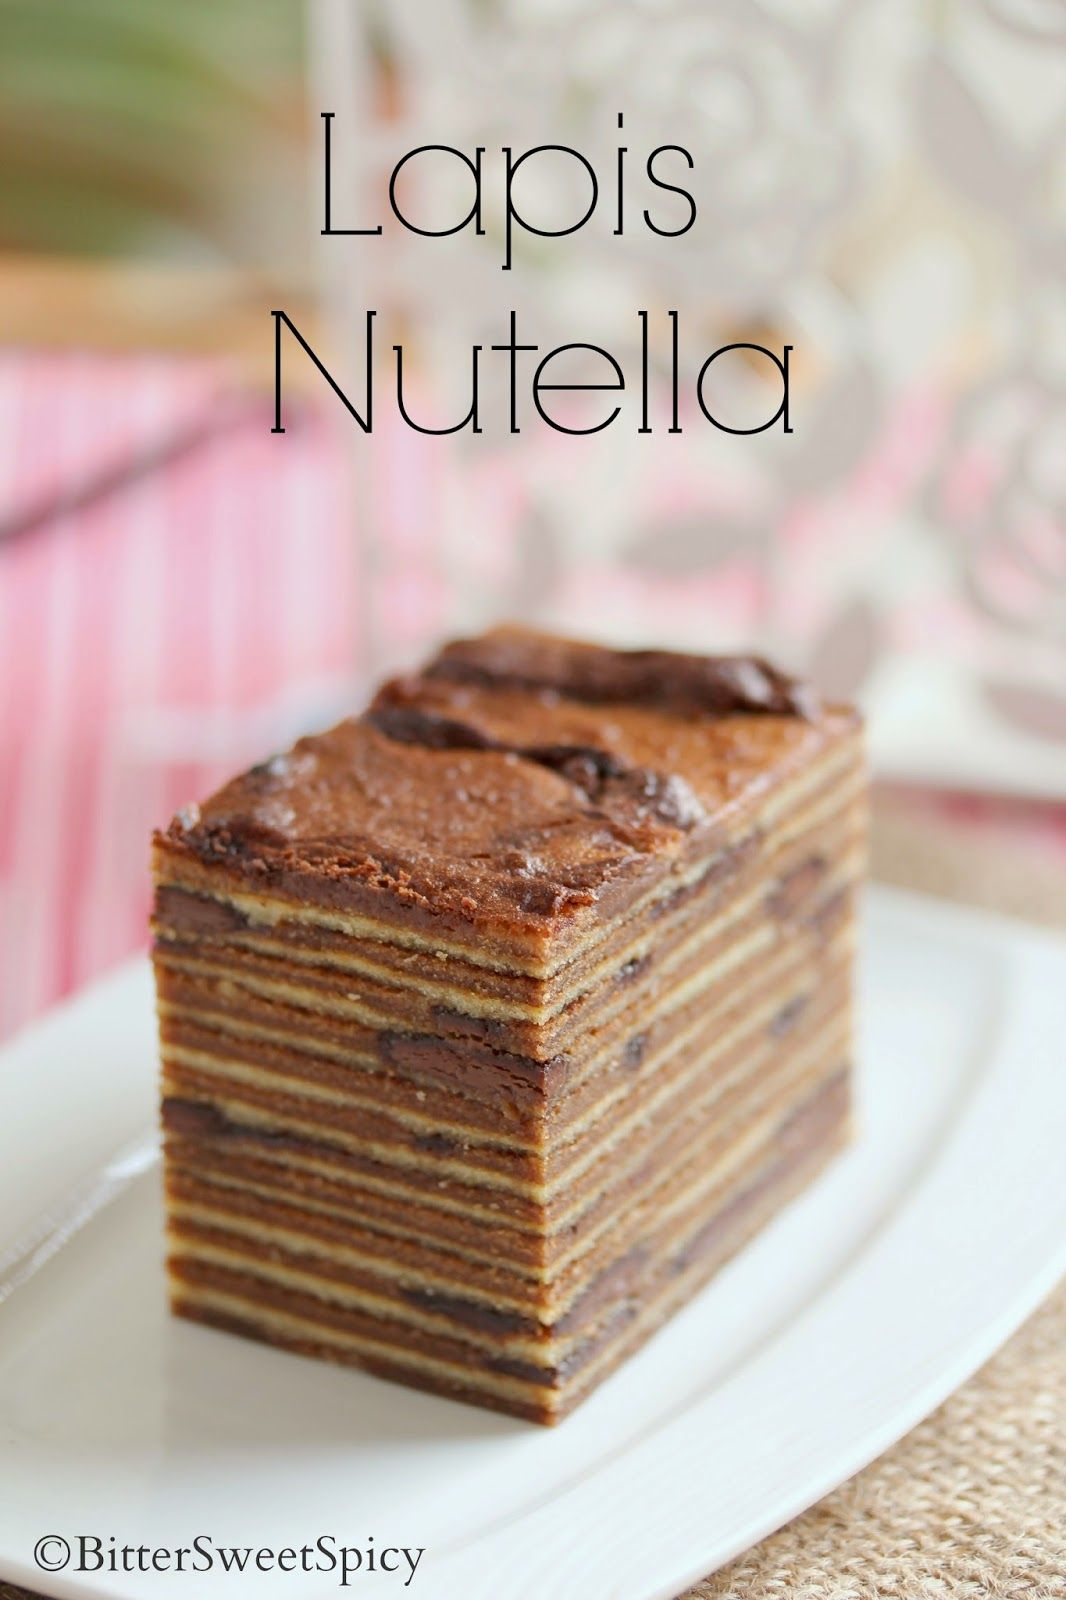 Lapis Nutella @ BitterSweetSpicy